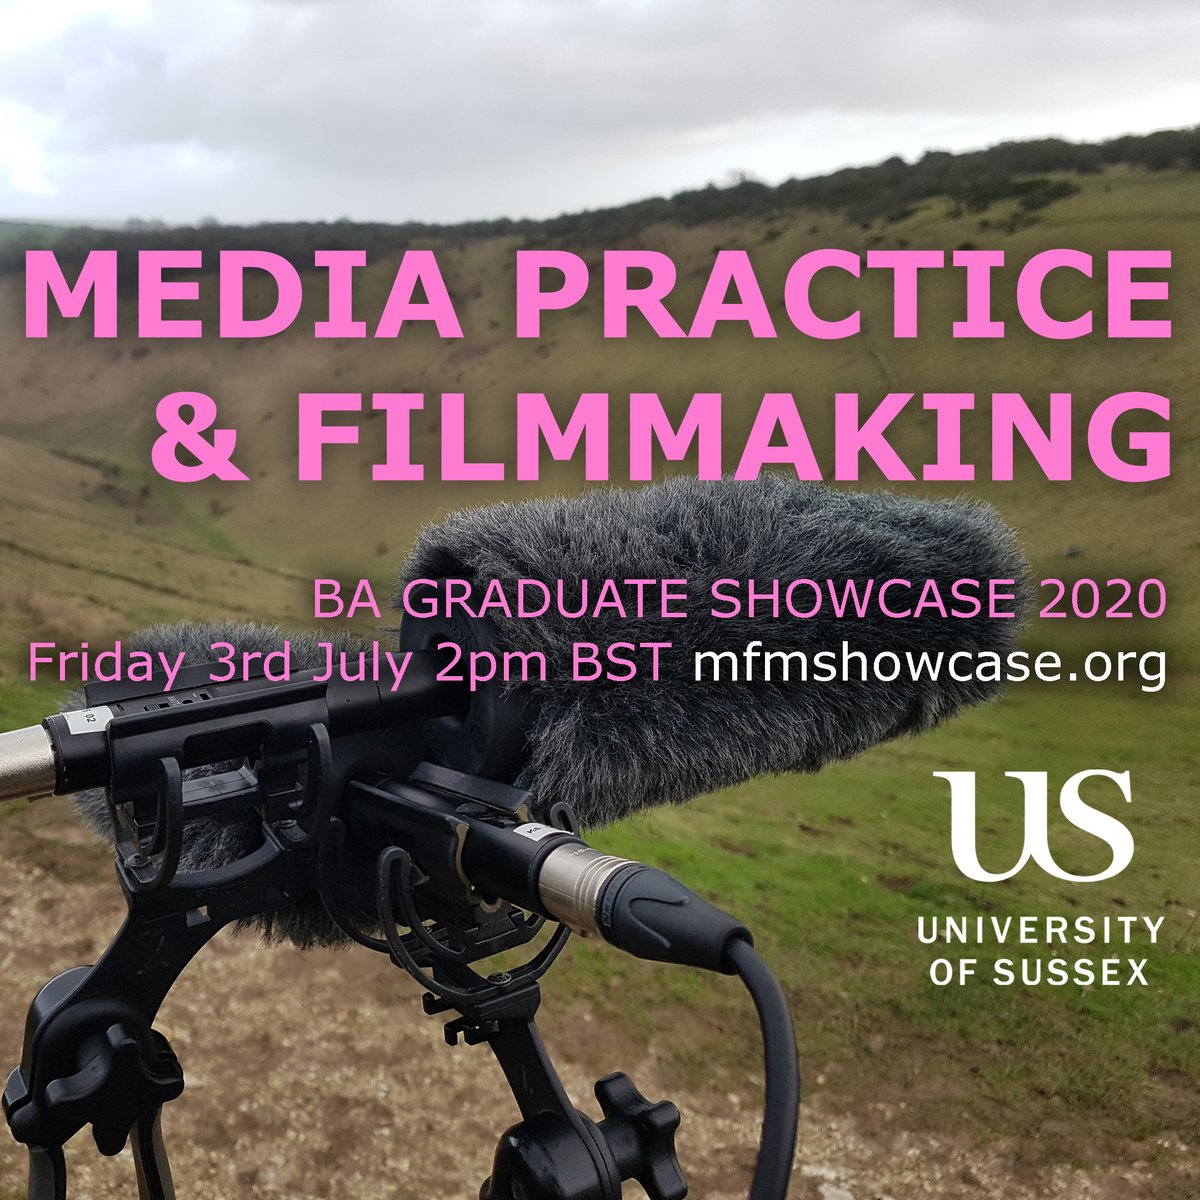 test Twitter Media - Our first cohort from the BA in Filmmaking at Sussex are graduating! A selection of their work will be available from 2pm on 3rd July at https://t.co/wDilhNeqNg   @SussexUniMFM @SussexUniPress @SussexUniStaff https://t.co/mY7aHygs8P